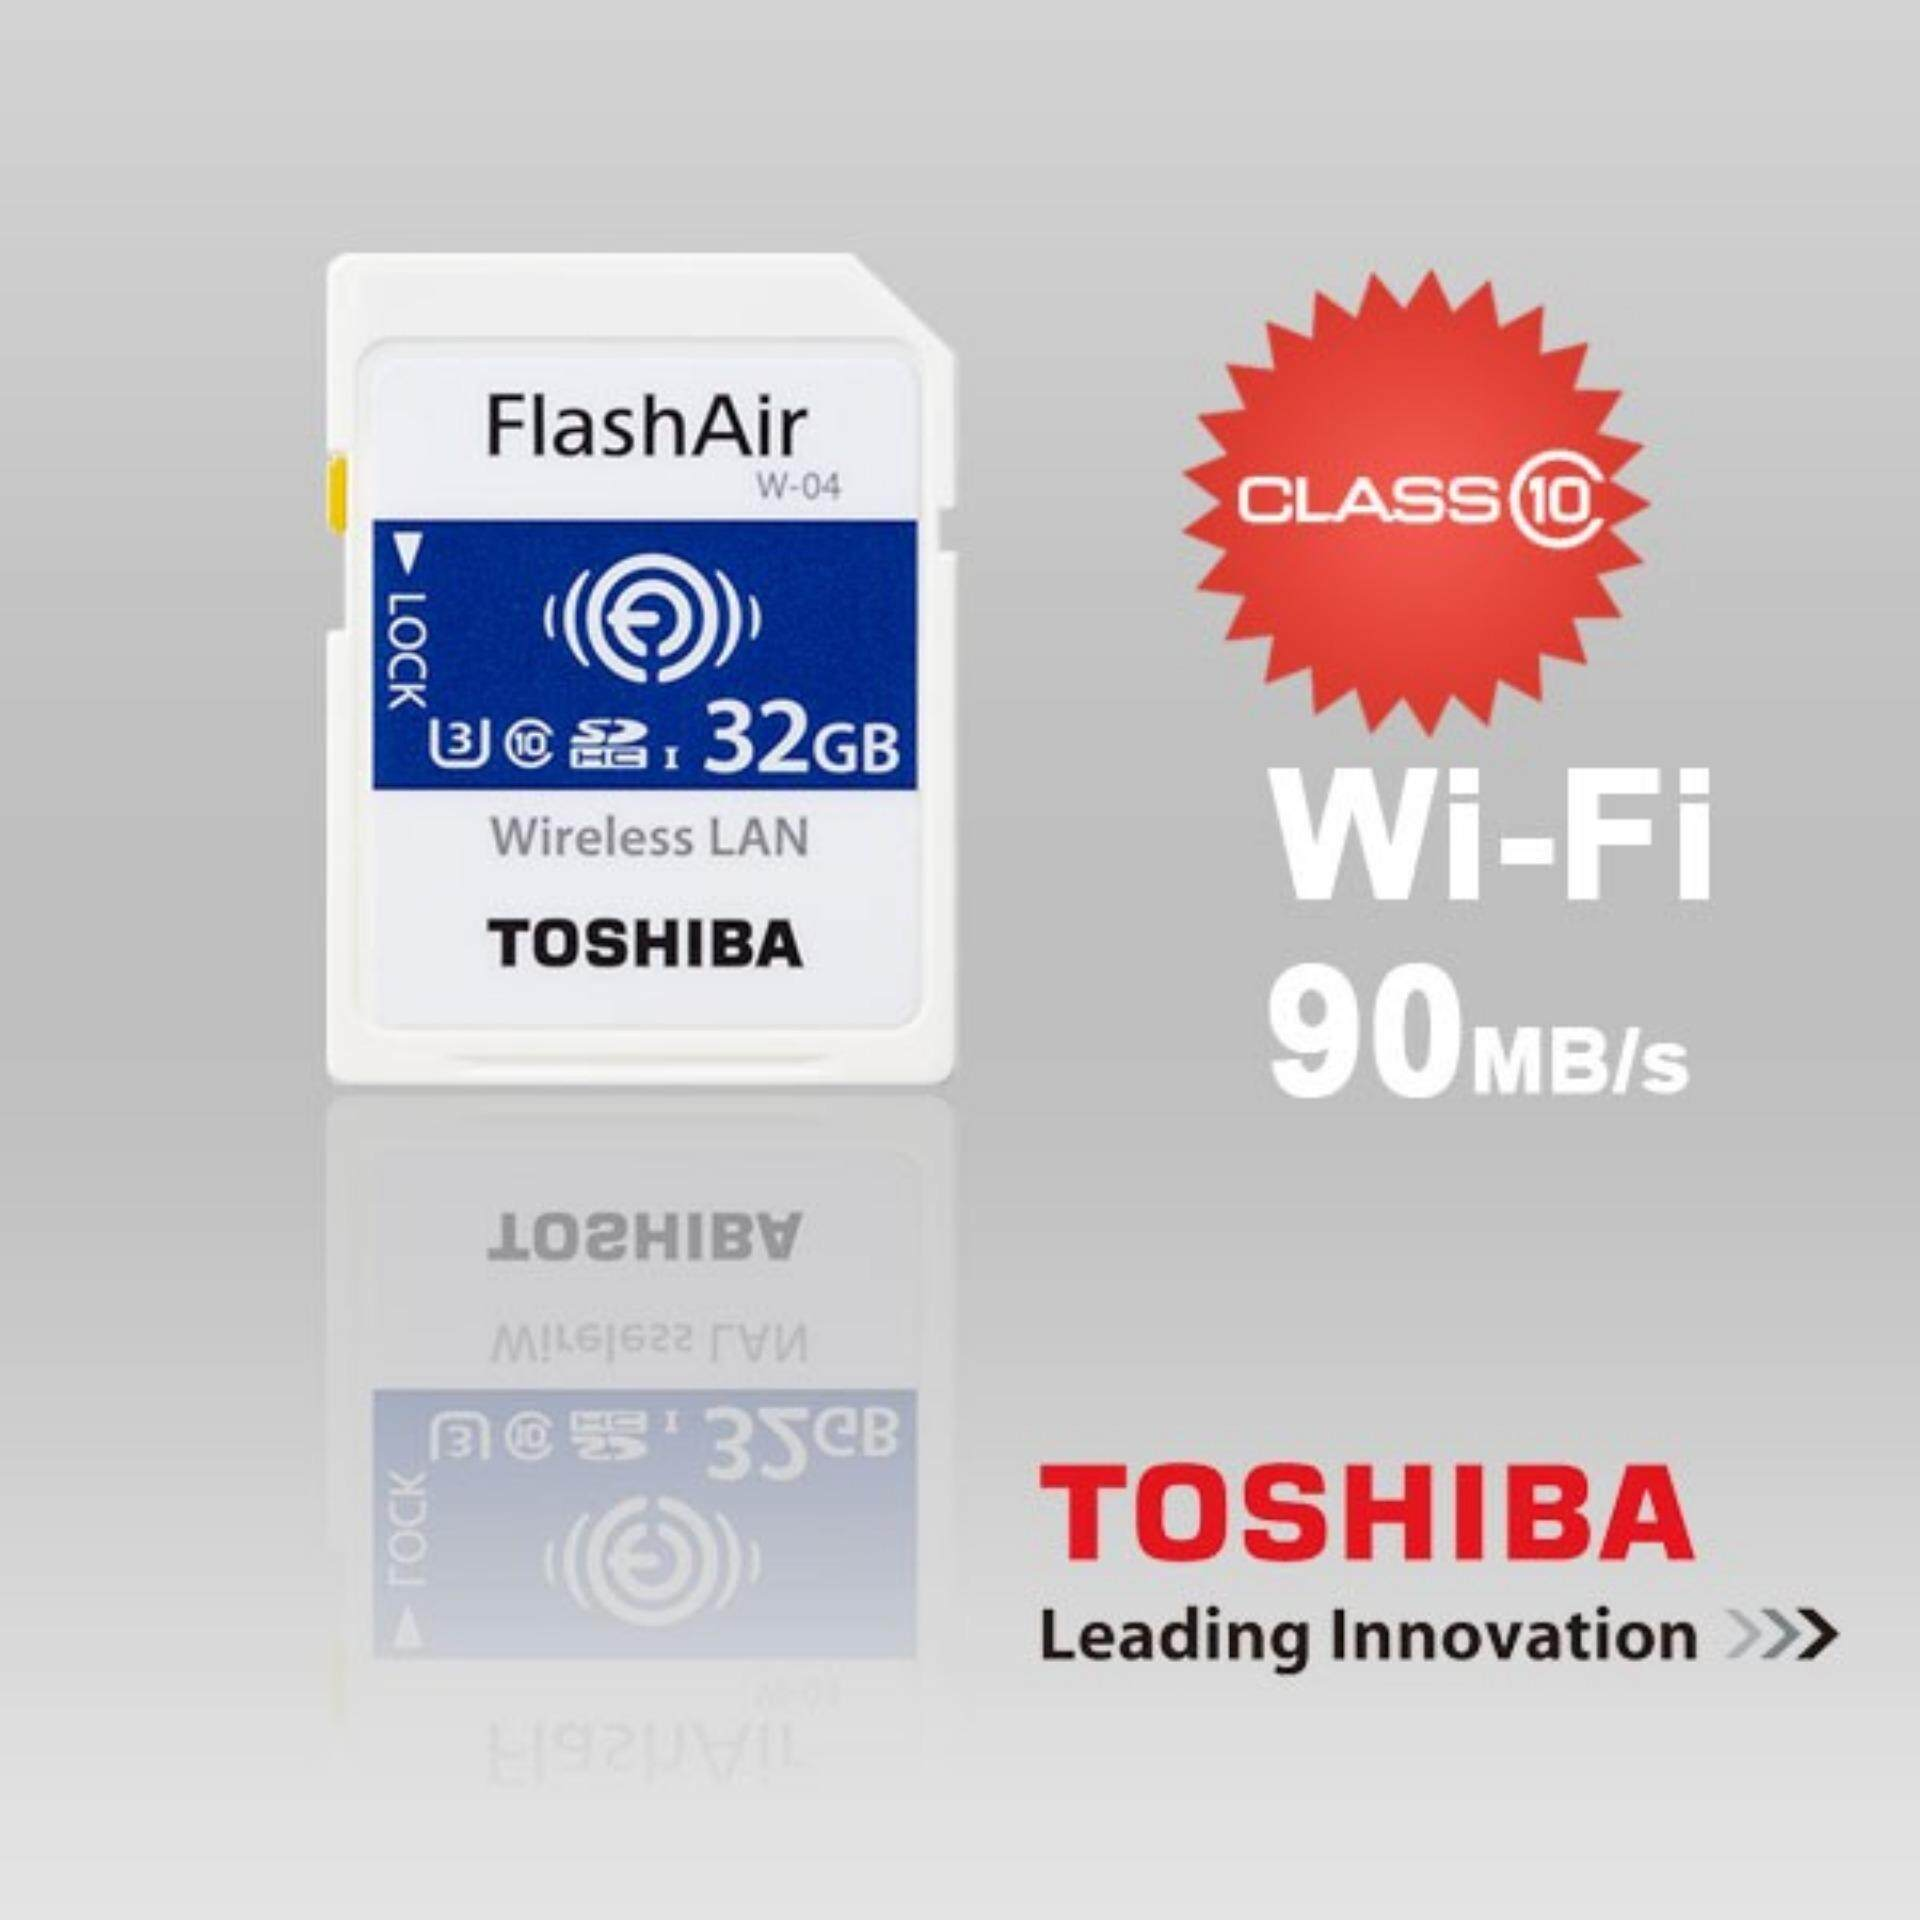 Toshiba FlashAir W-04 SD wi-fi Card 32gb